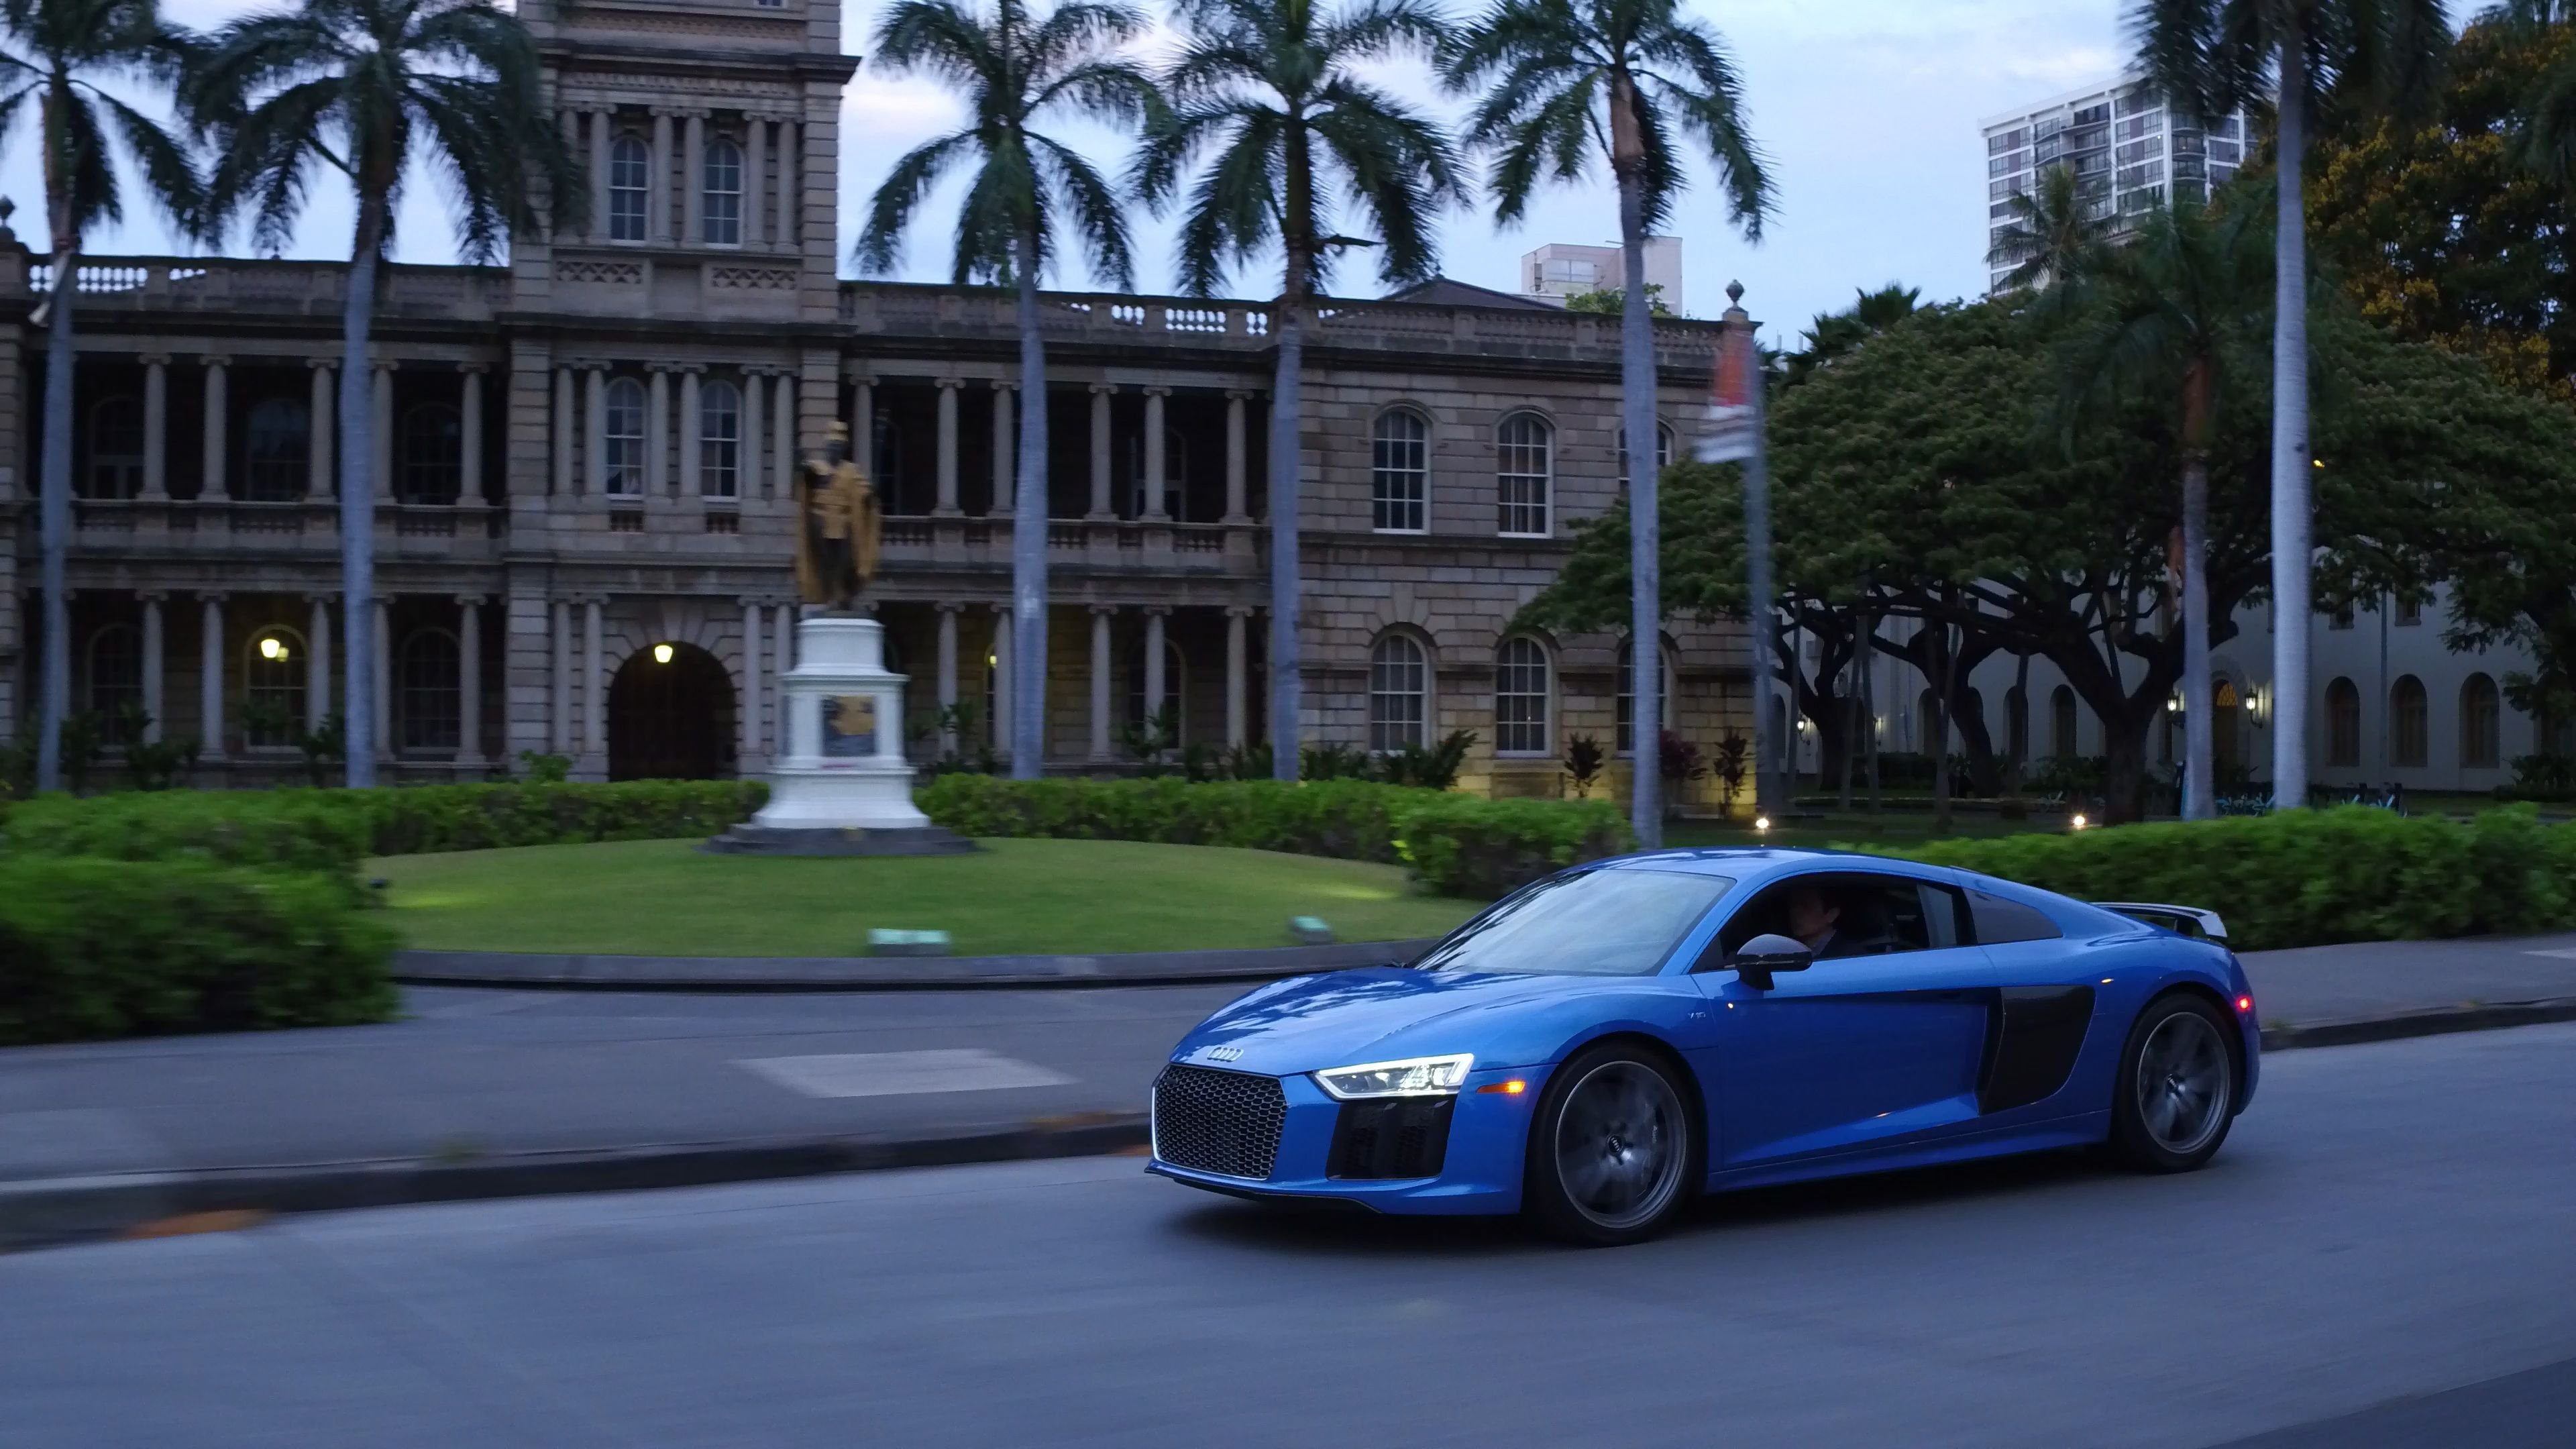 The Breathtaking Audi R8 Supercar In Front Of The Historic Iolani Palace In Hawaii Audi Dealership Used Audi Audi